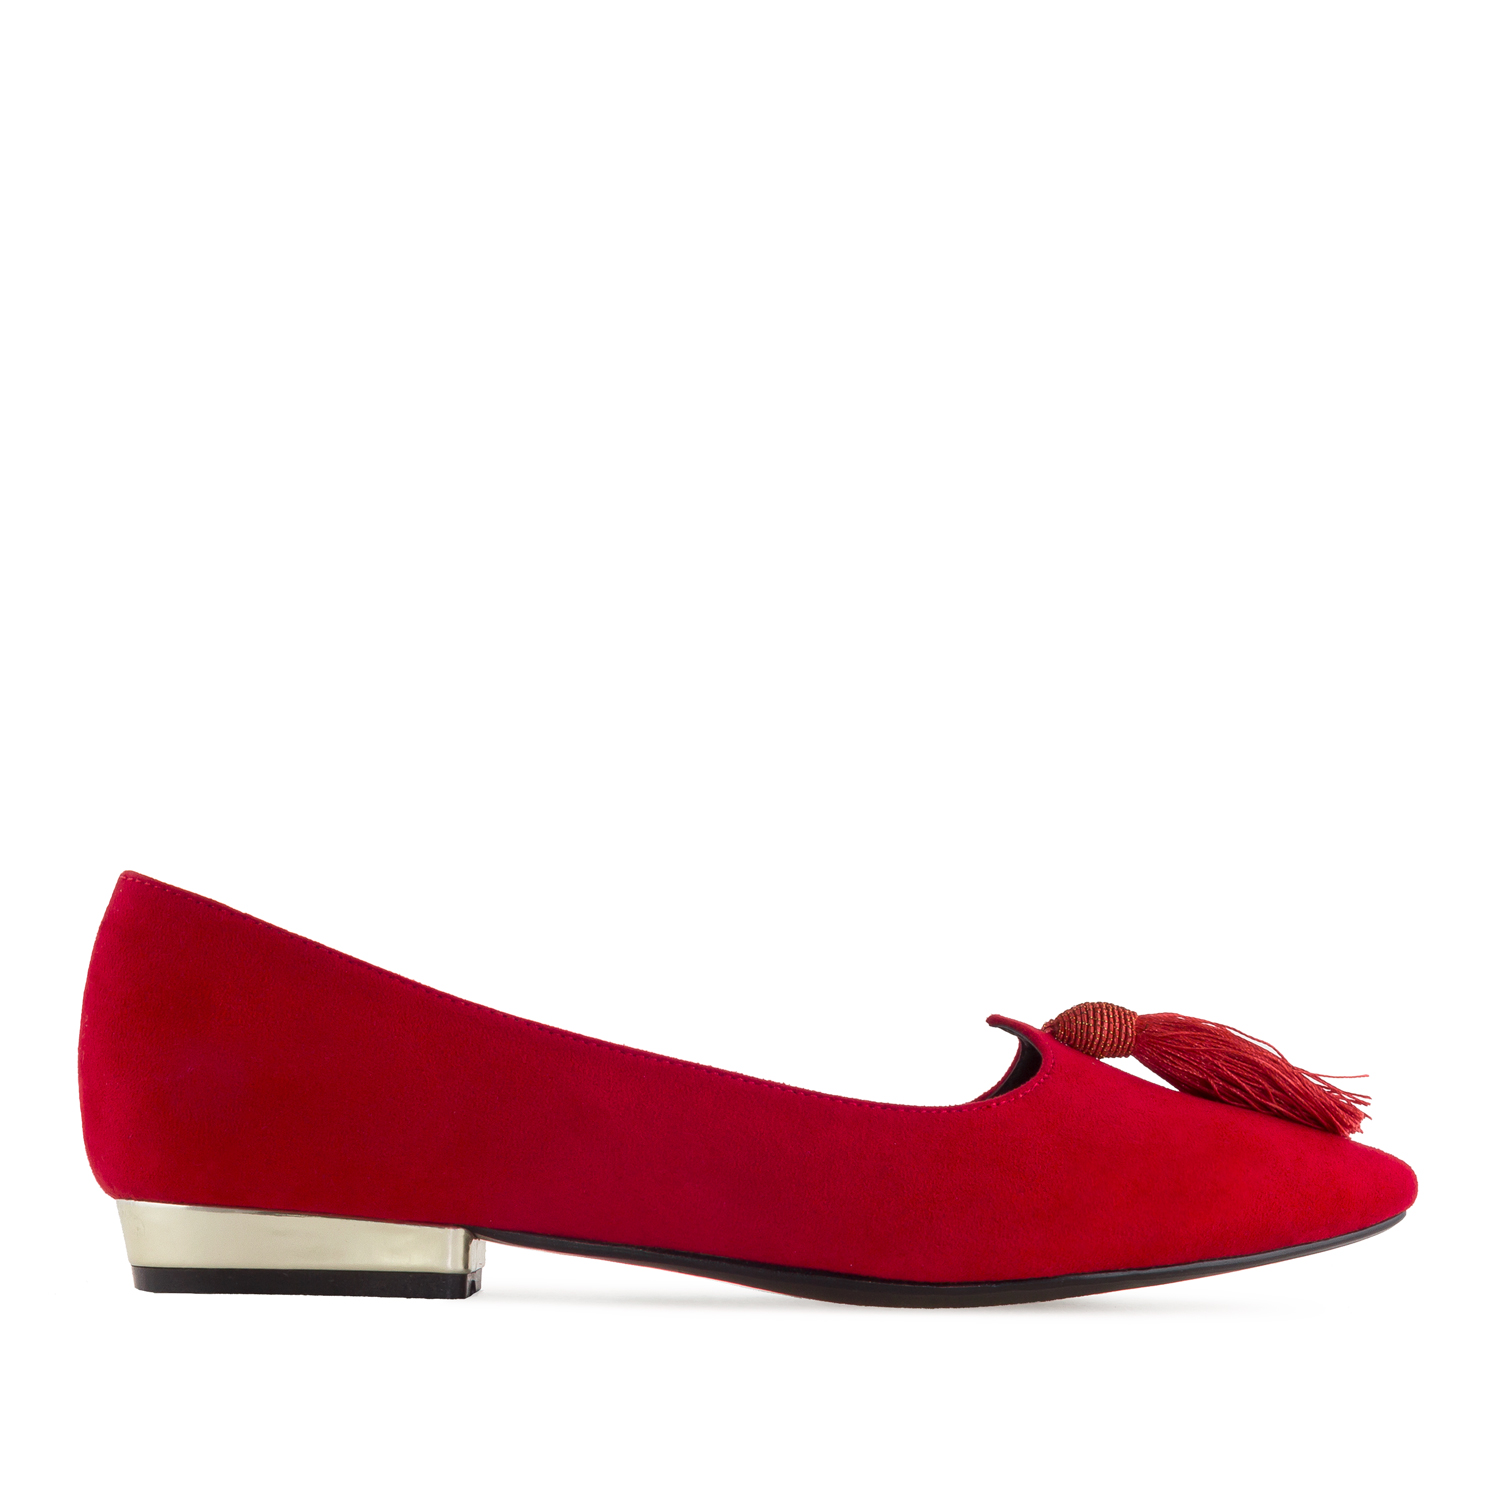 Tassle Ballet Flats in Red Suede